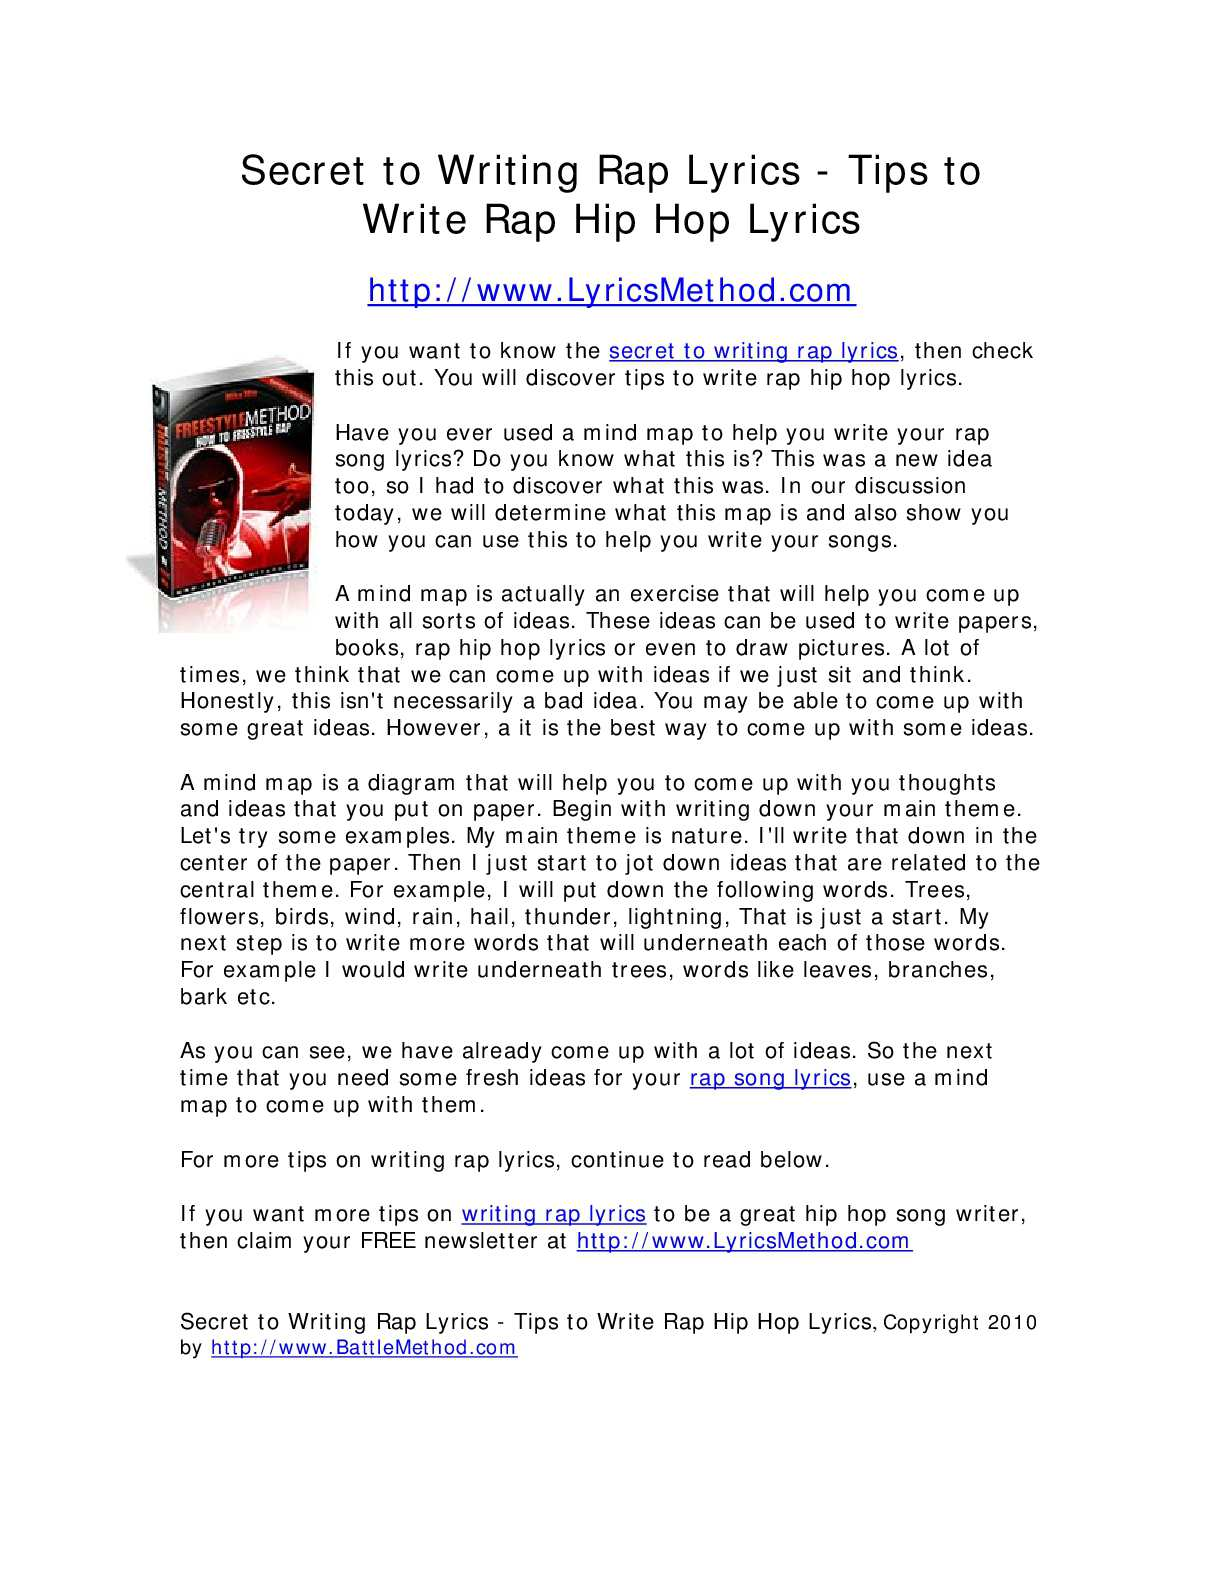 Calaméo - Secret to Writing Rap Lyrics - Tips to Write Rap